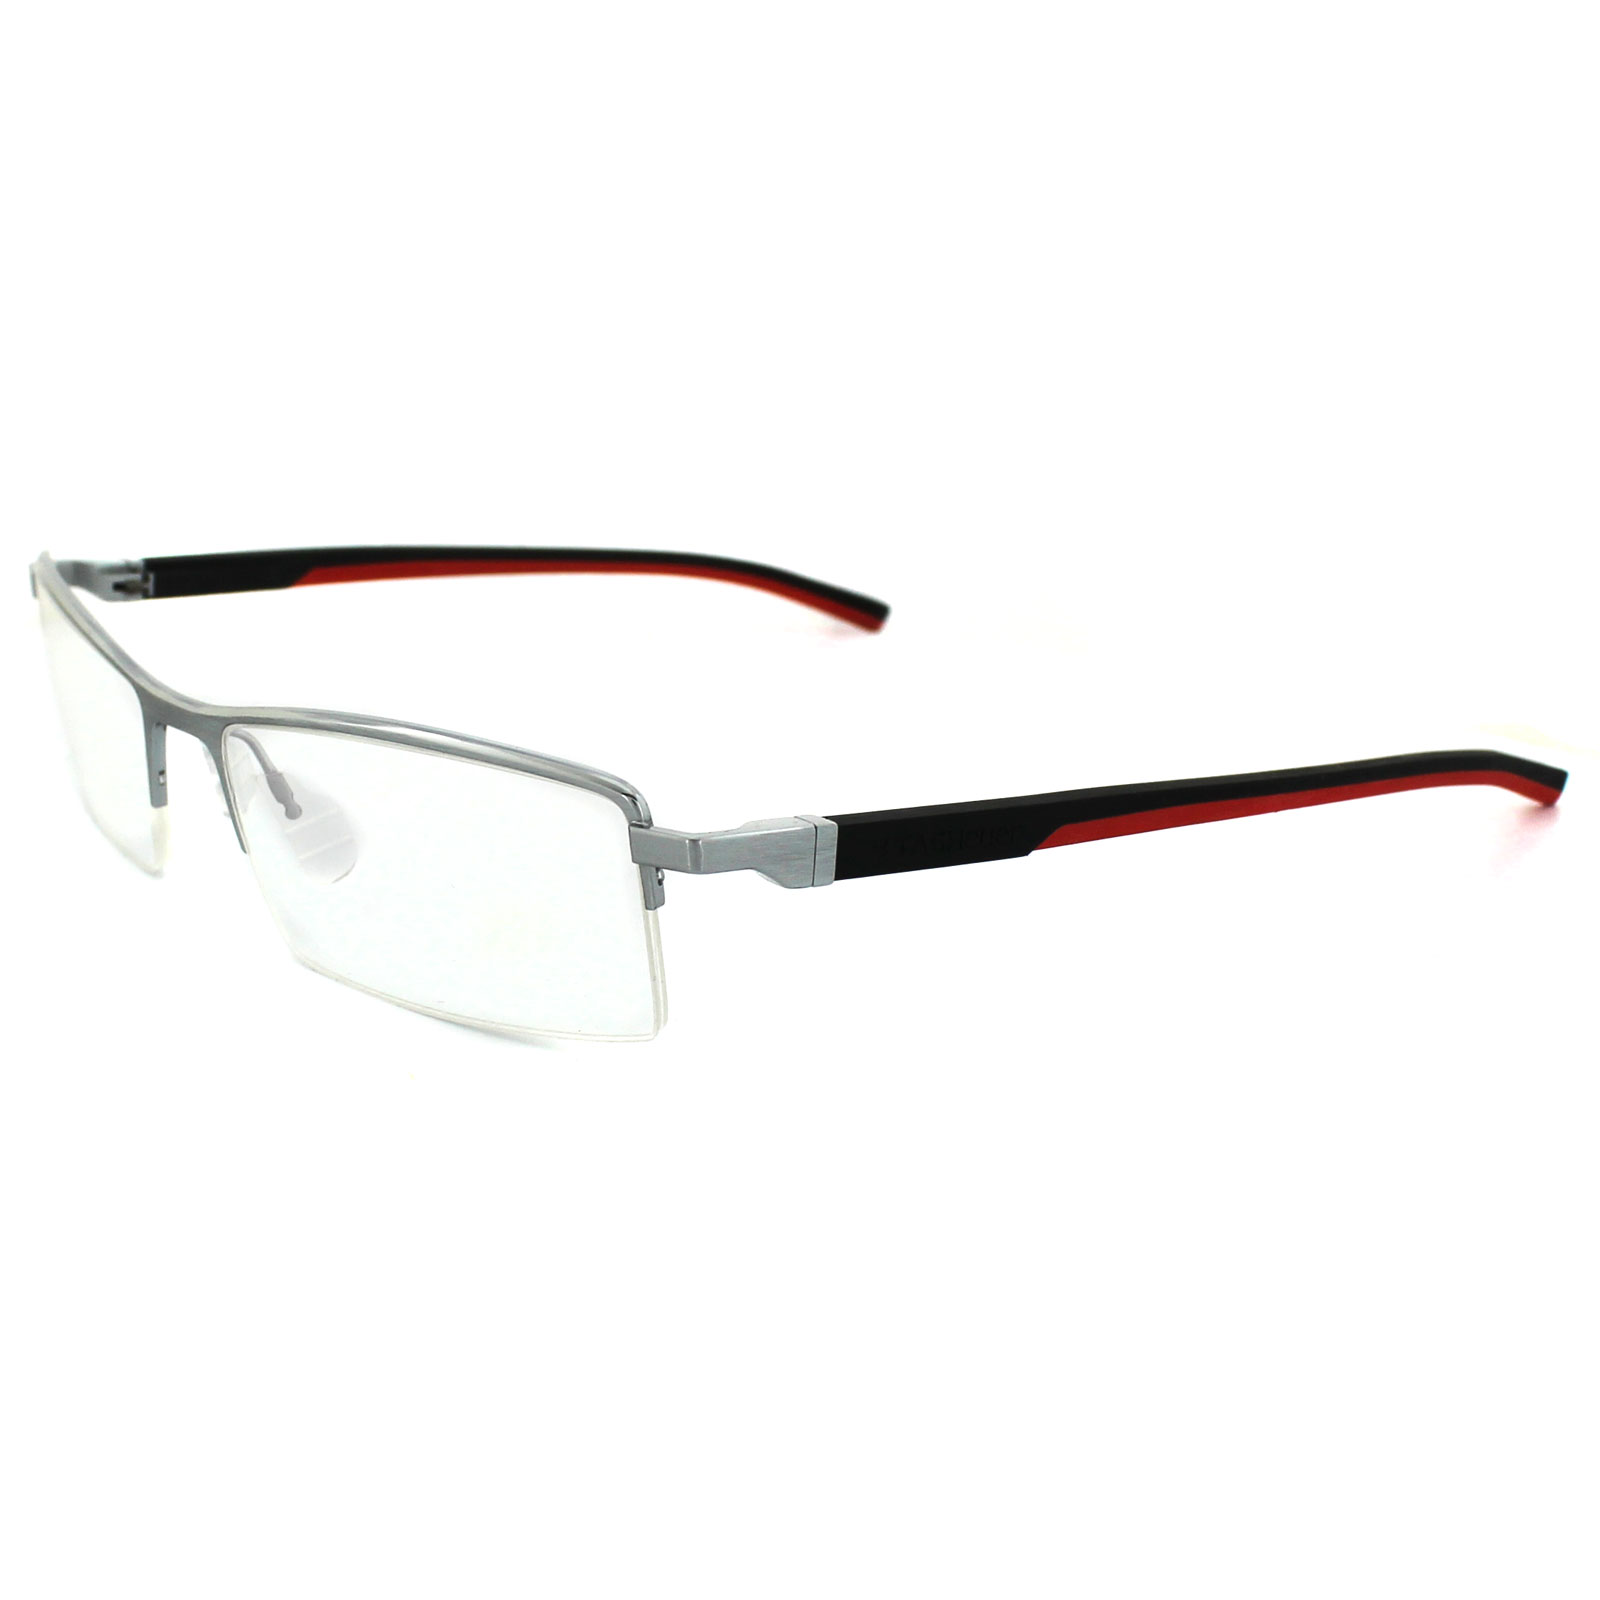 Eyeglasses Frame Tag Heuer : Cheap Tag Heuer Automatic 0821 Frames - Discounted Sunglasses